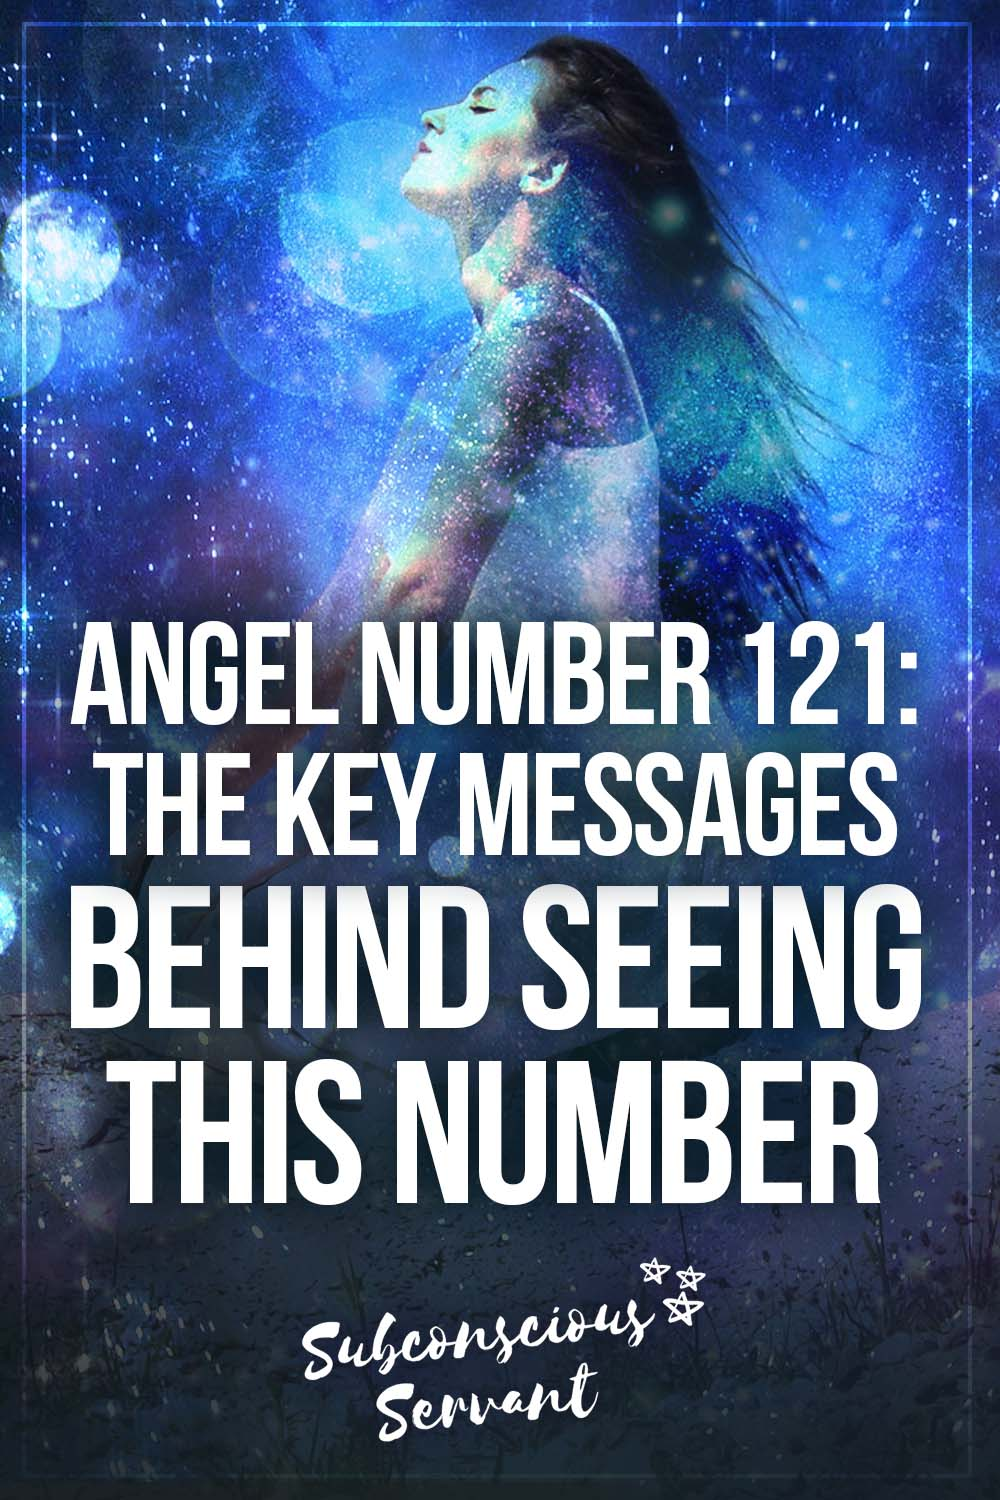 Angel Number 121: The Key Messages Behind Seeing This Number